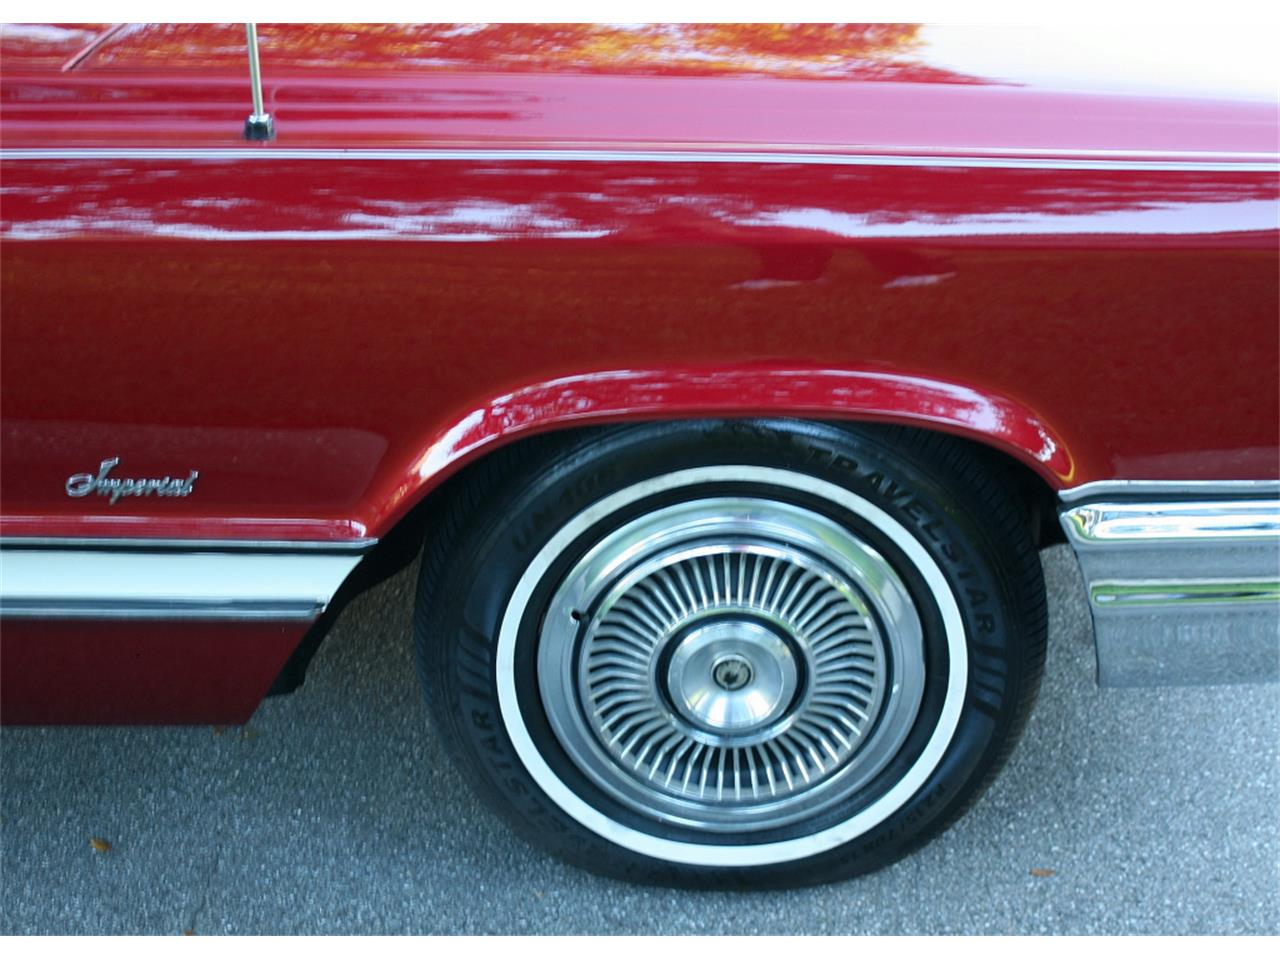 1968 Chrysler Imperial for sale in Lakeland, FL – photo 20